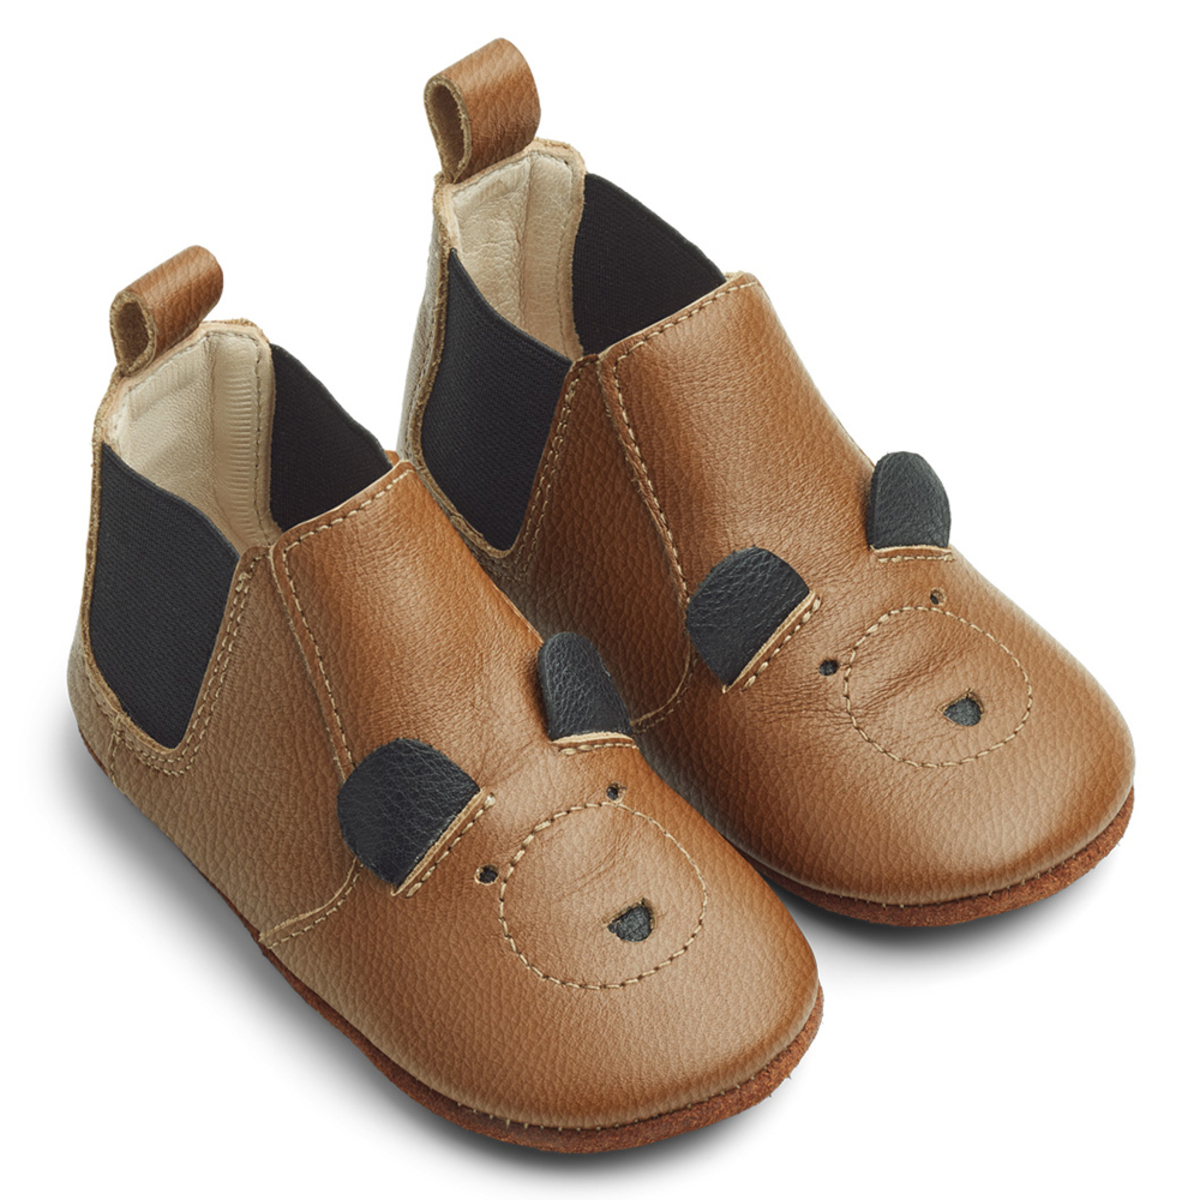 Chaussons & Chaussures Chausson Edith Mr Bear Mustard - 20 Chausson Edith Mr Bear Mustard - 20